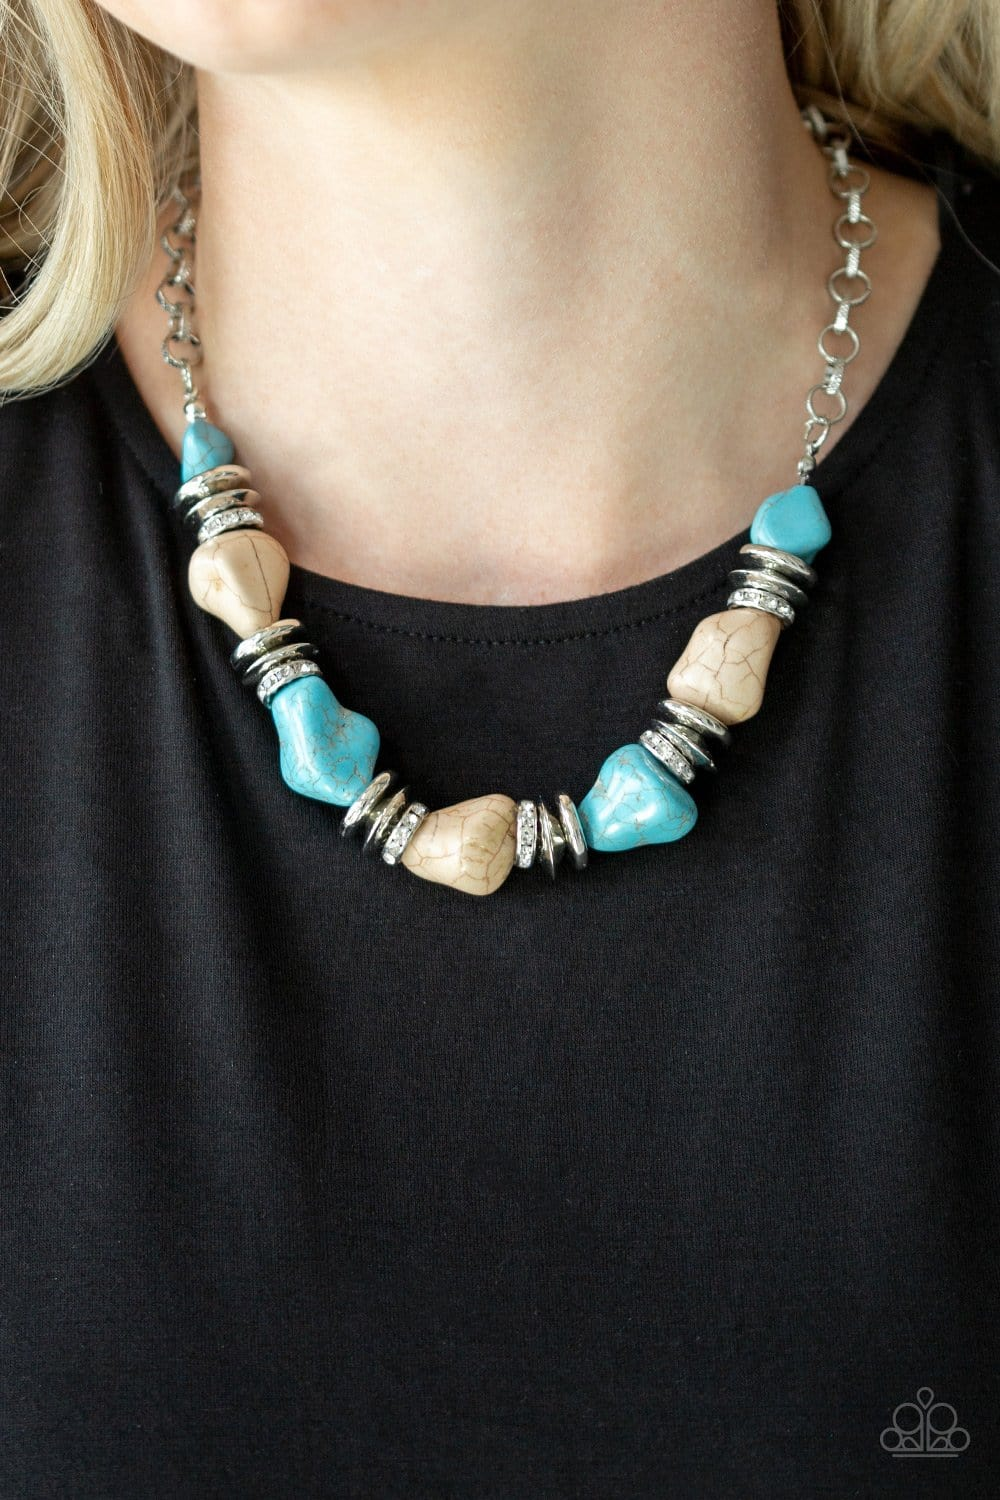 Stunningly Stone Age - Multi: Paparazzi Accessories - Jewels N' Thingz Boutique